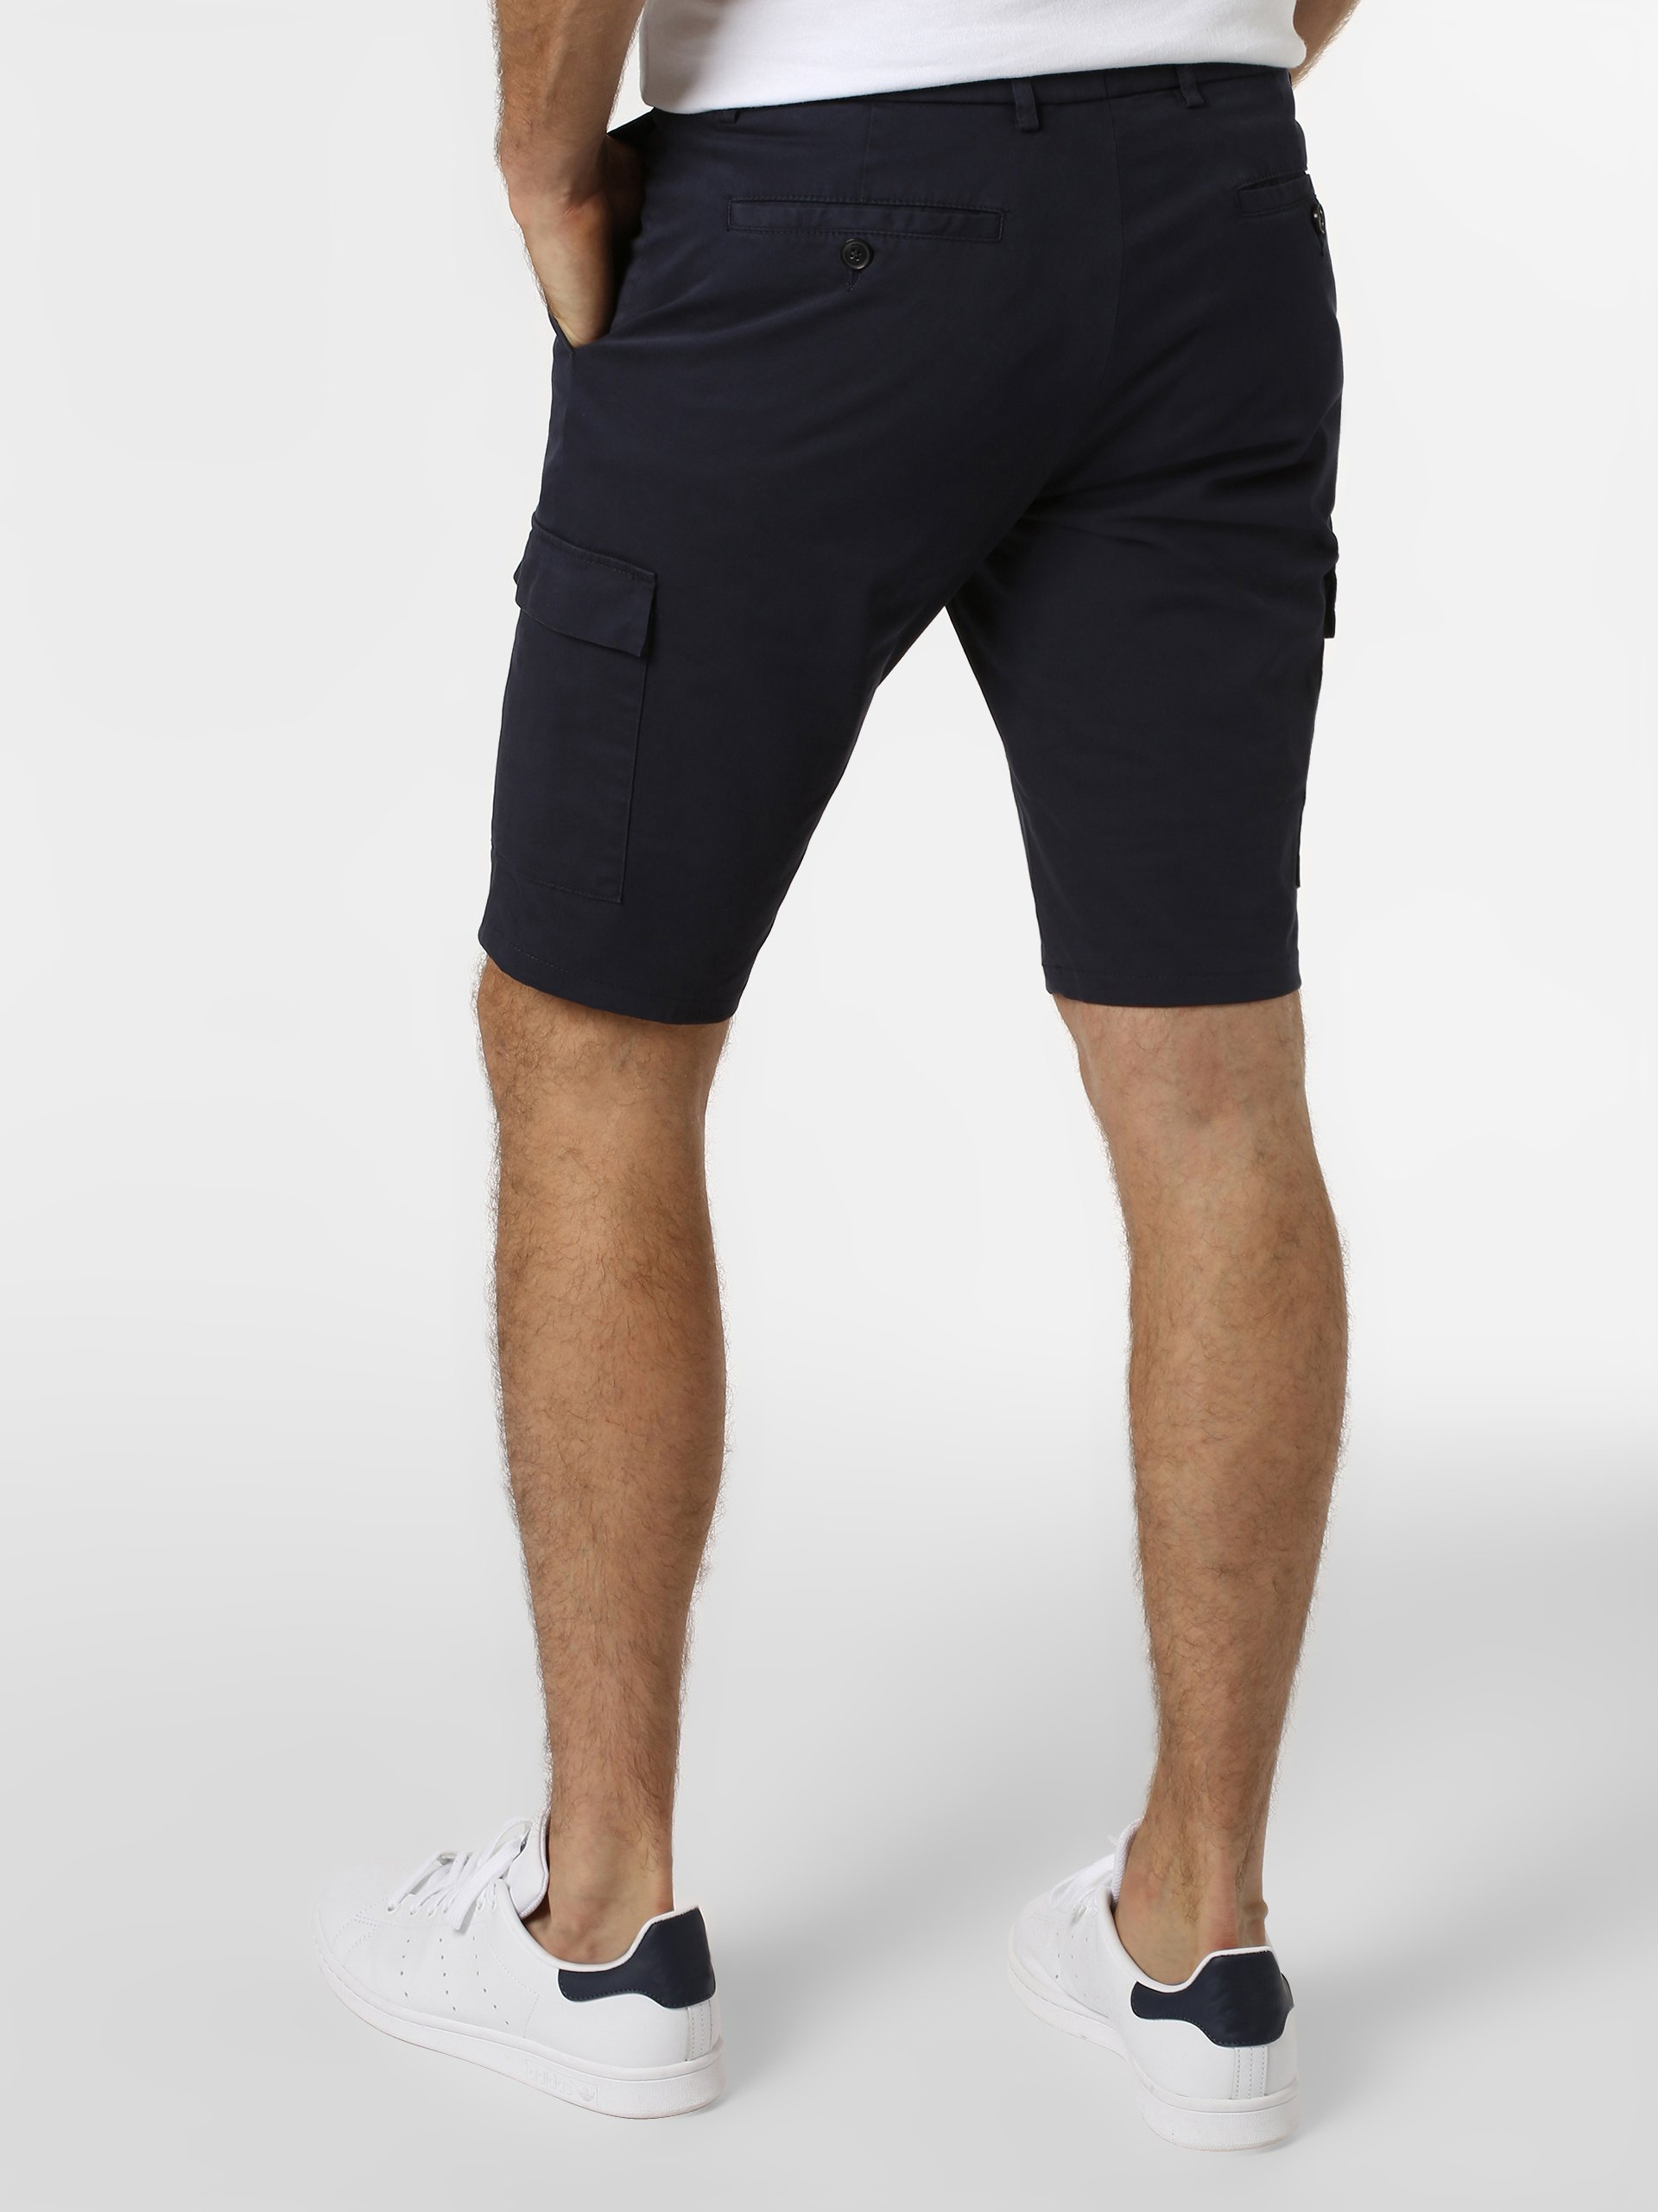 Finshley & Harding London Herren Shorts - Franklin